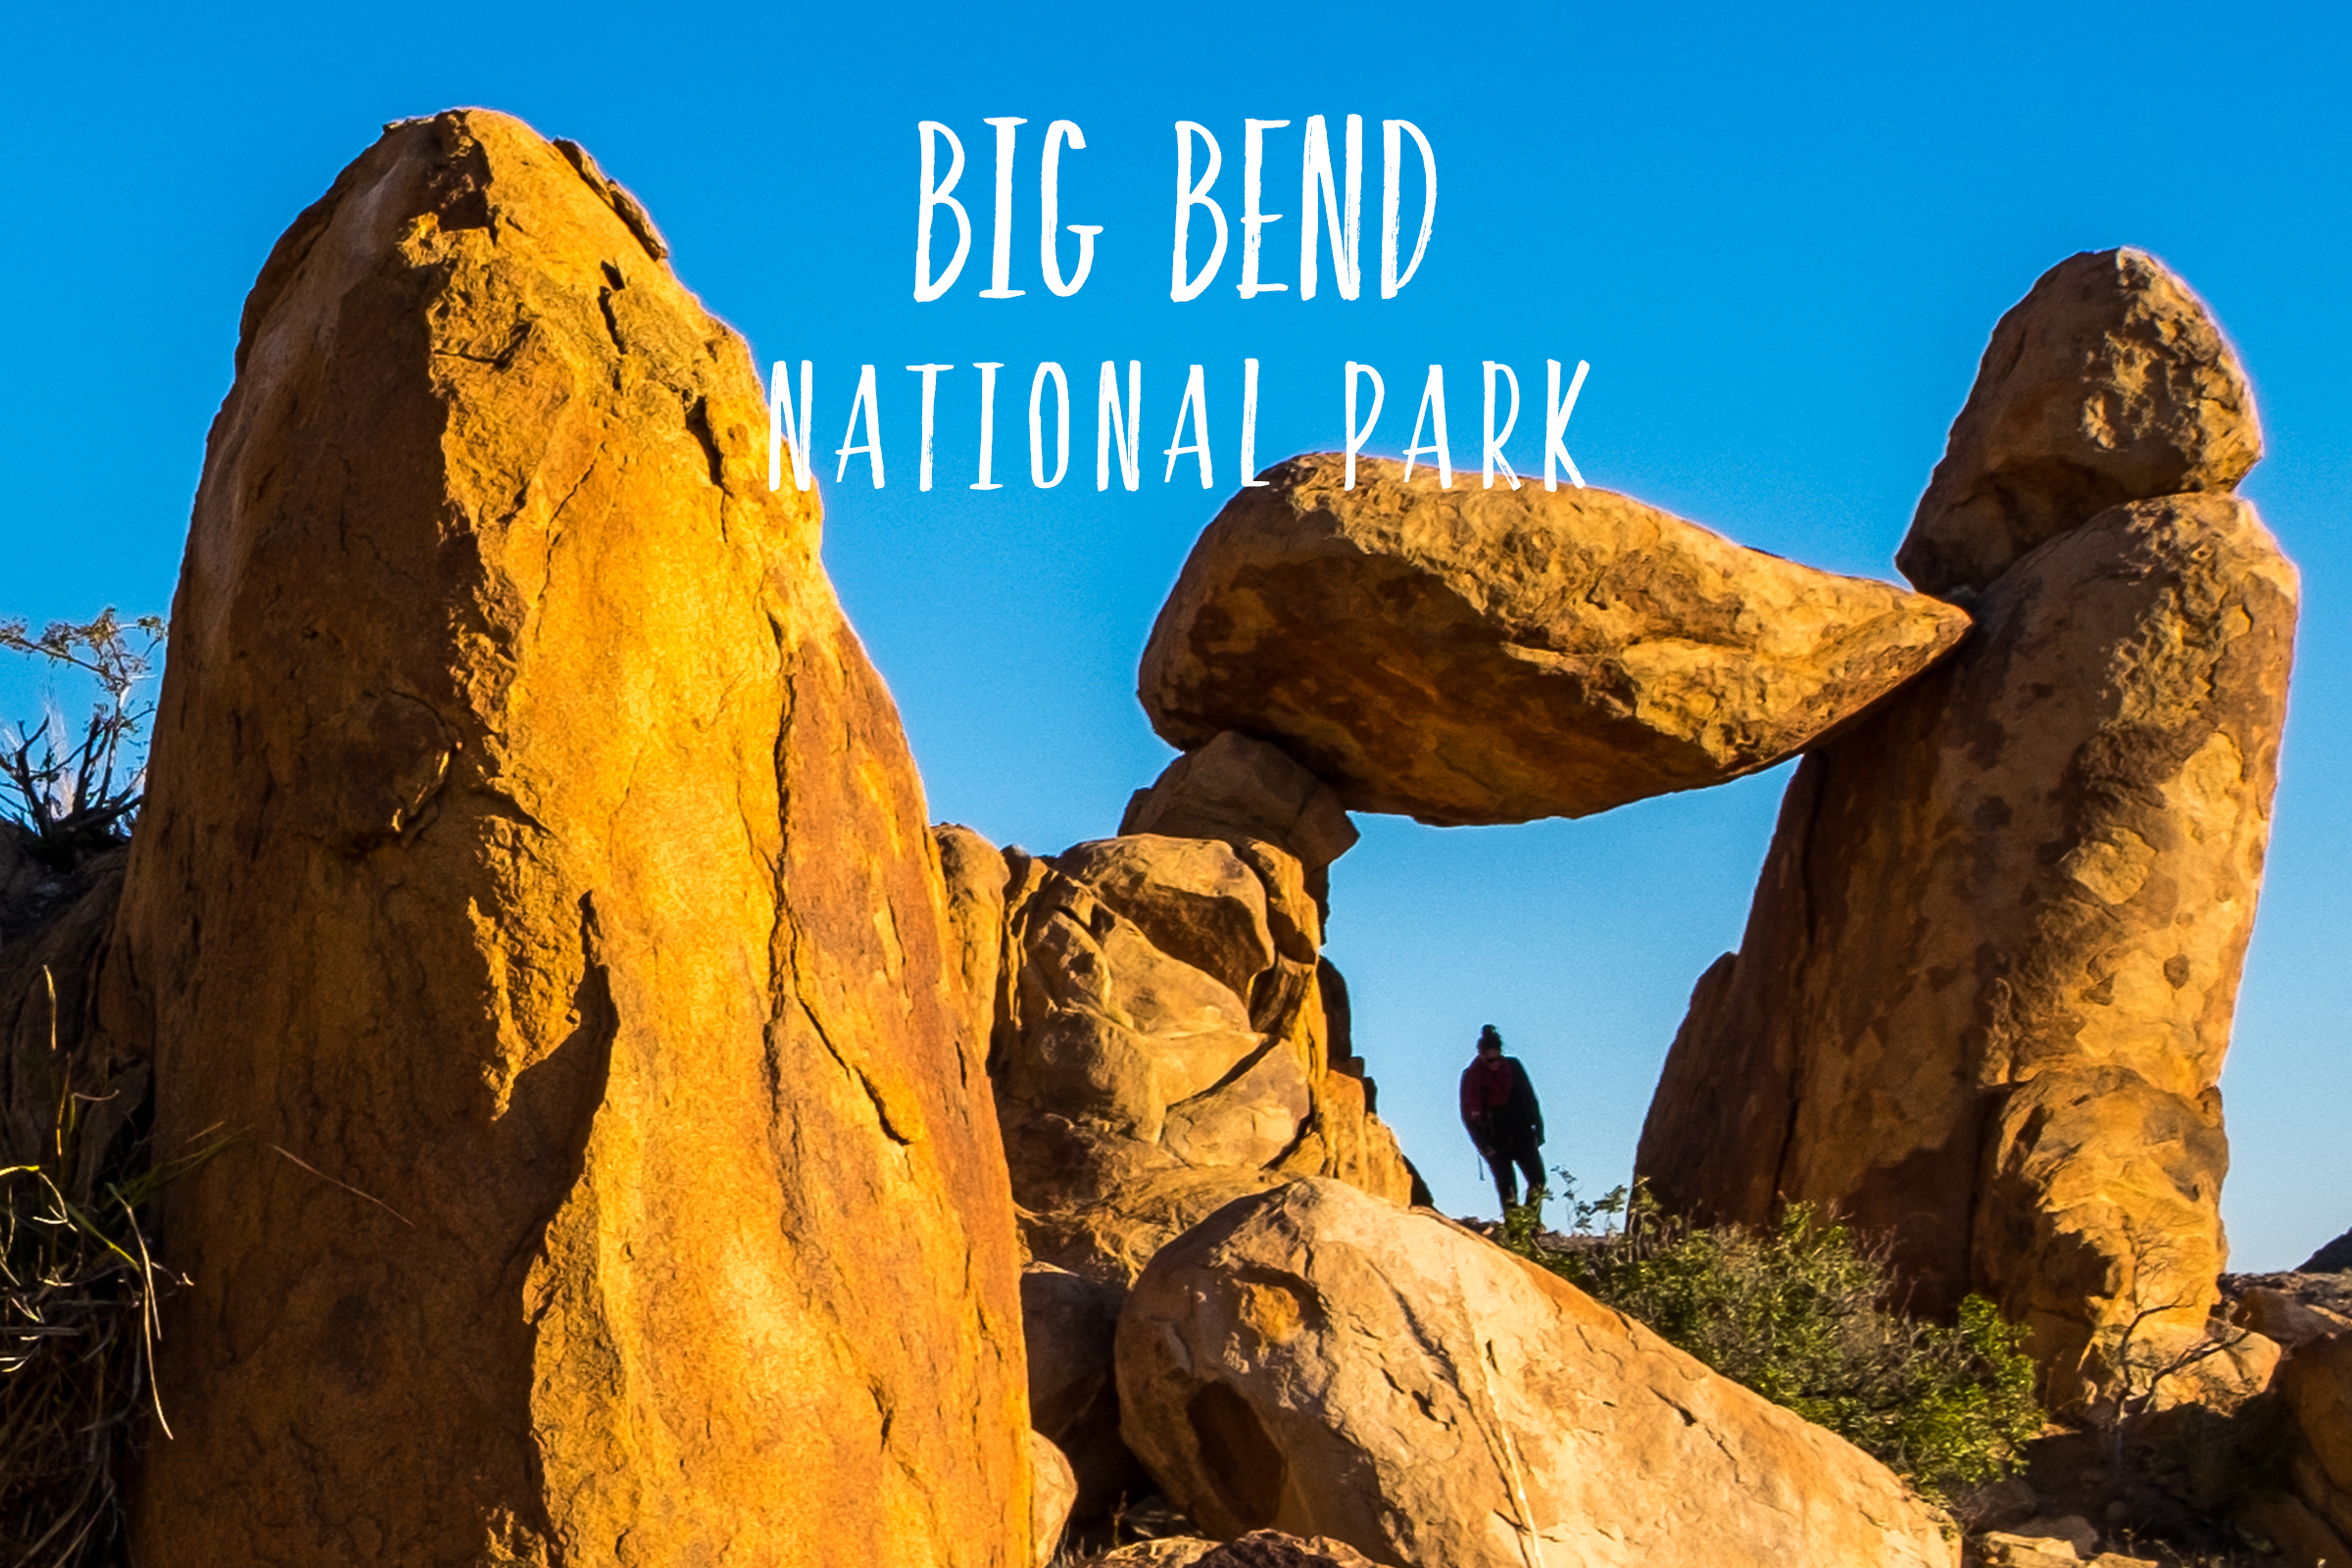 Big Bend National Park | Park 10/59